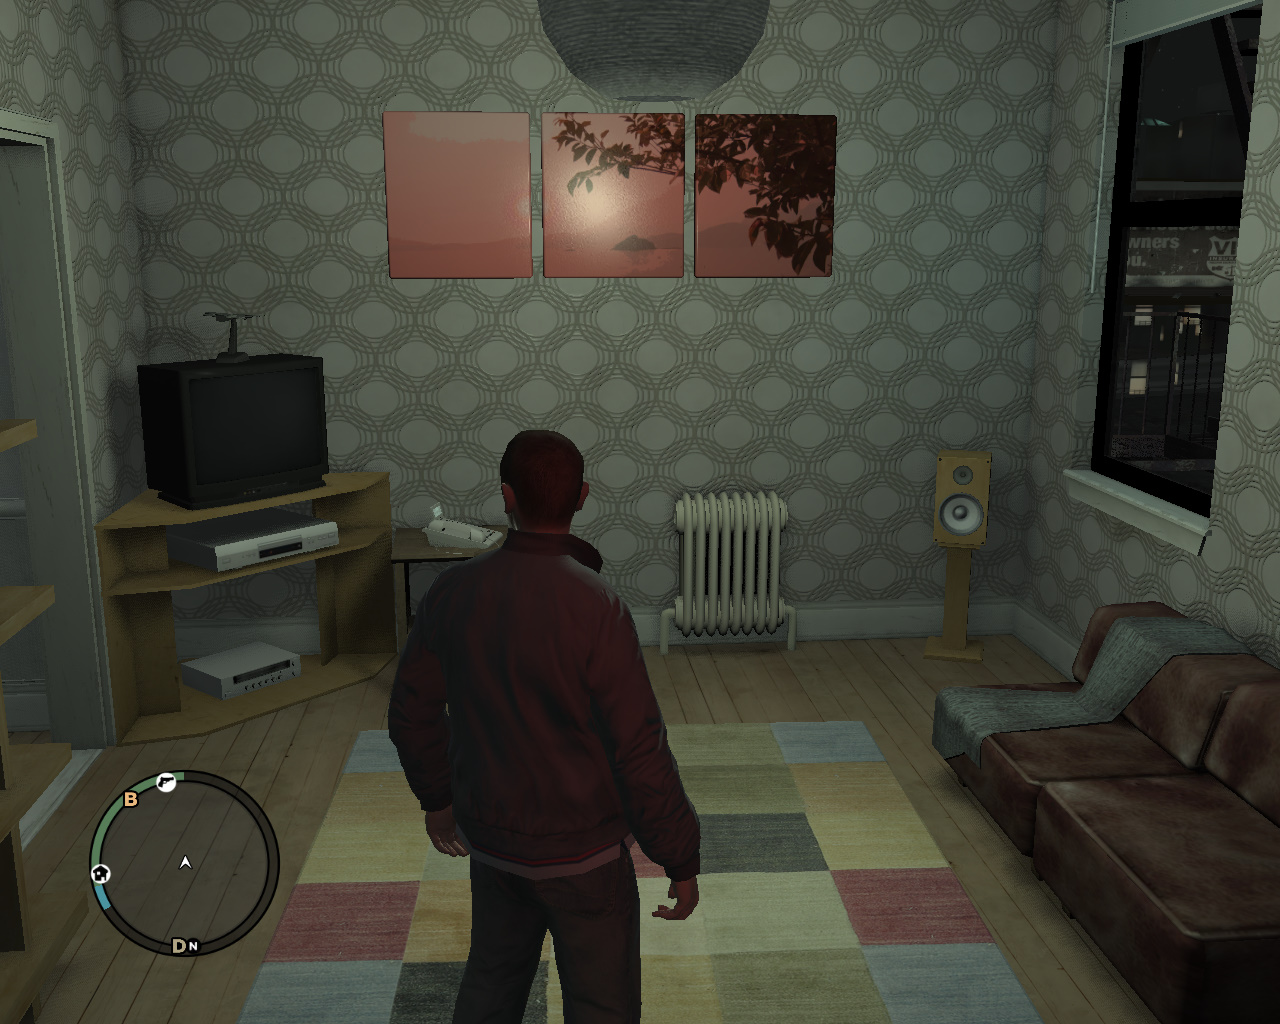 Drug Dealer's Apartment